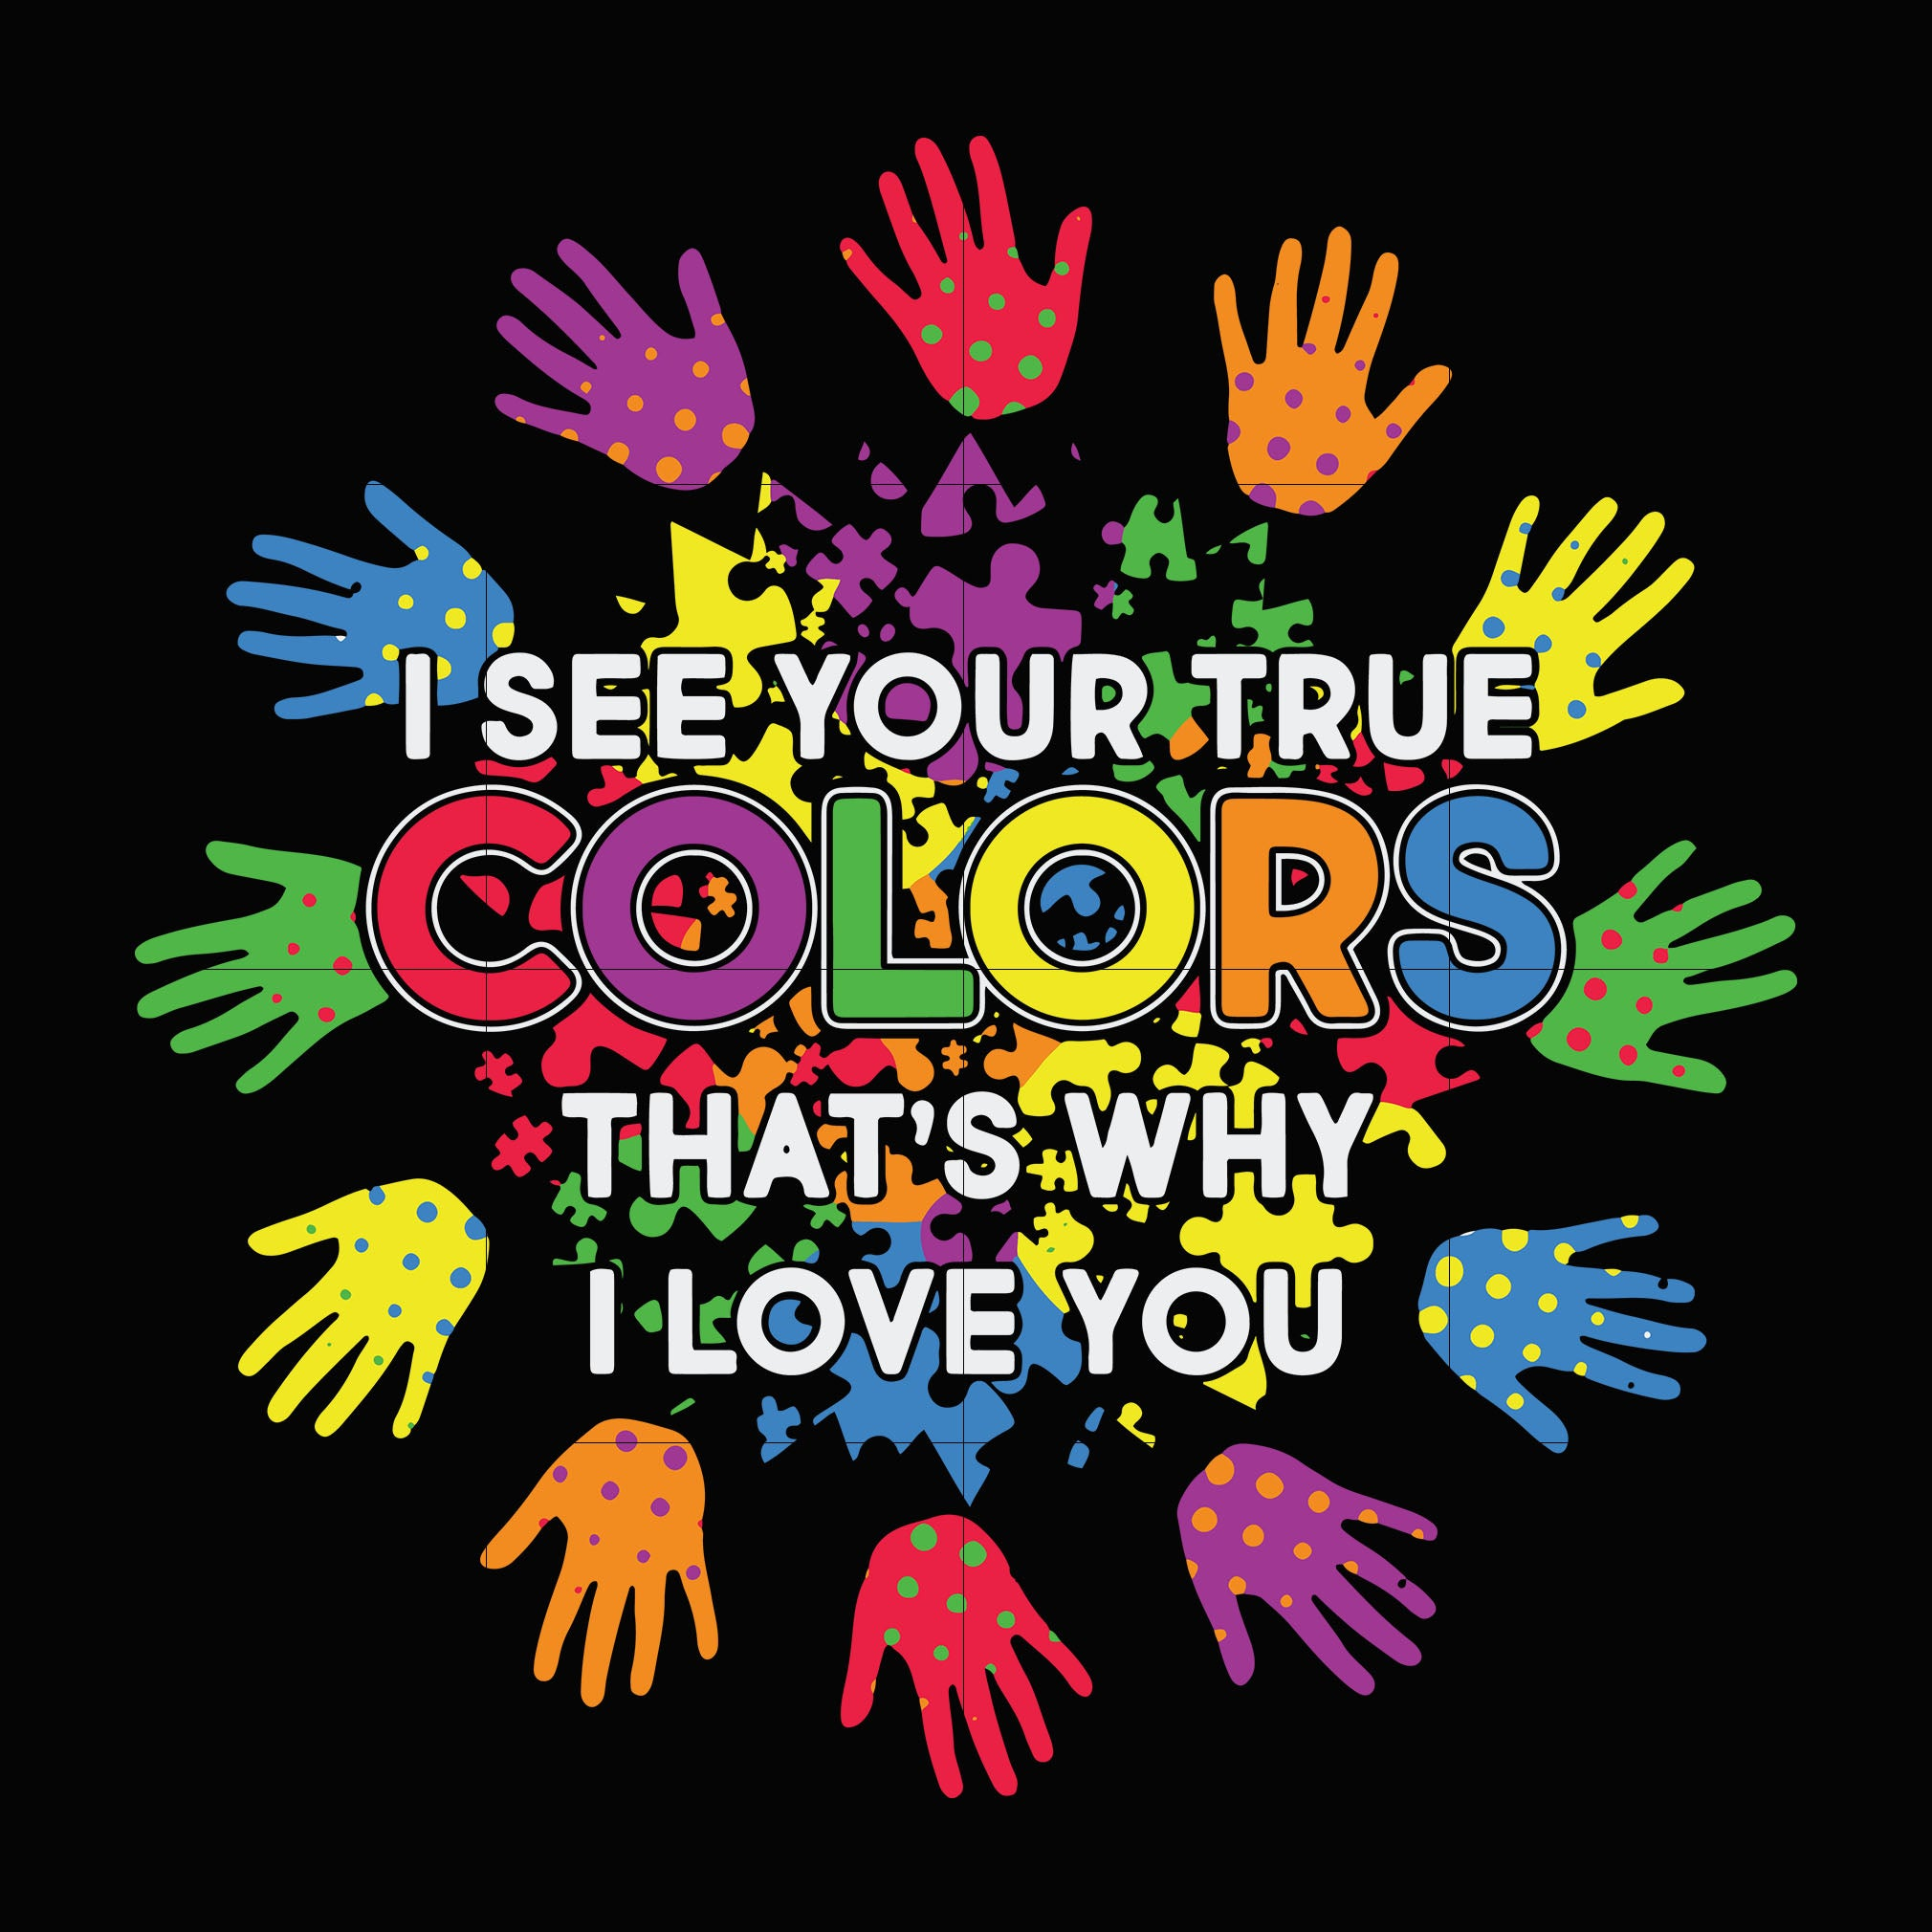 I see your true color that's why i love you svg, autism svg, autism awareness svg, dxf, eps, png digital file